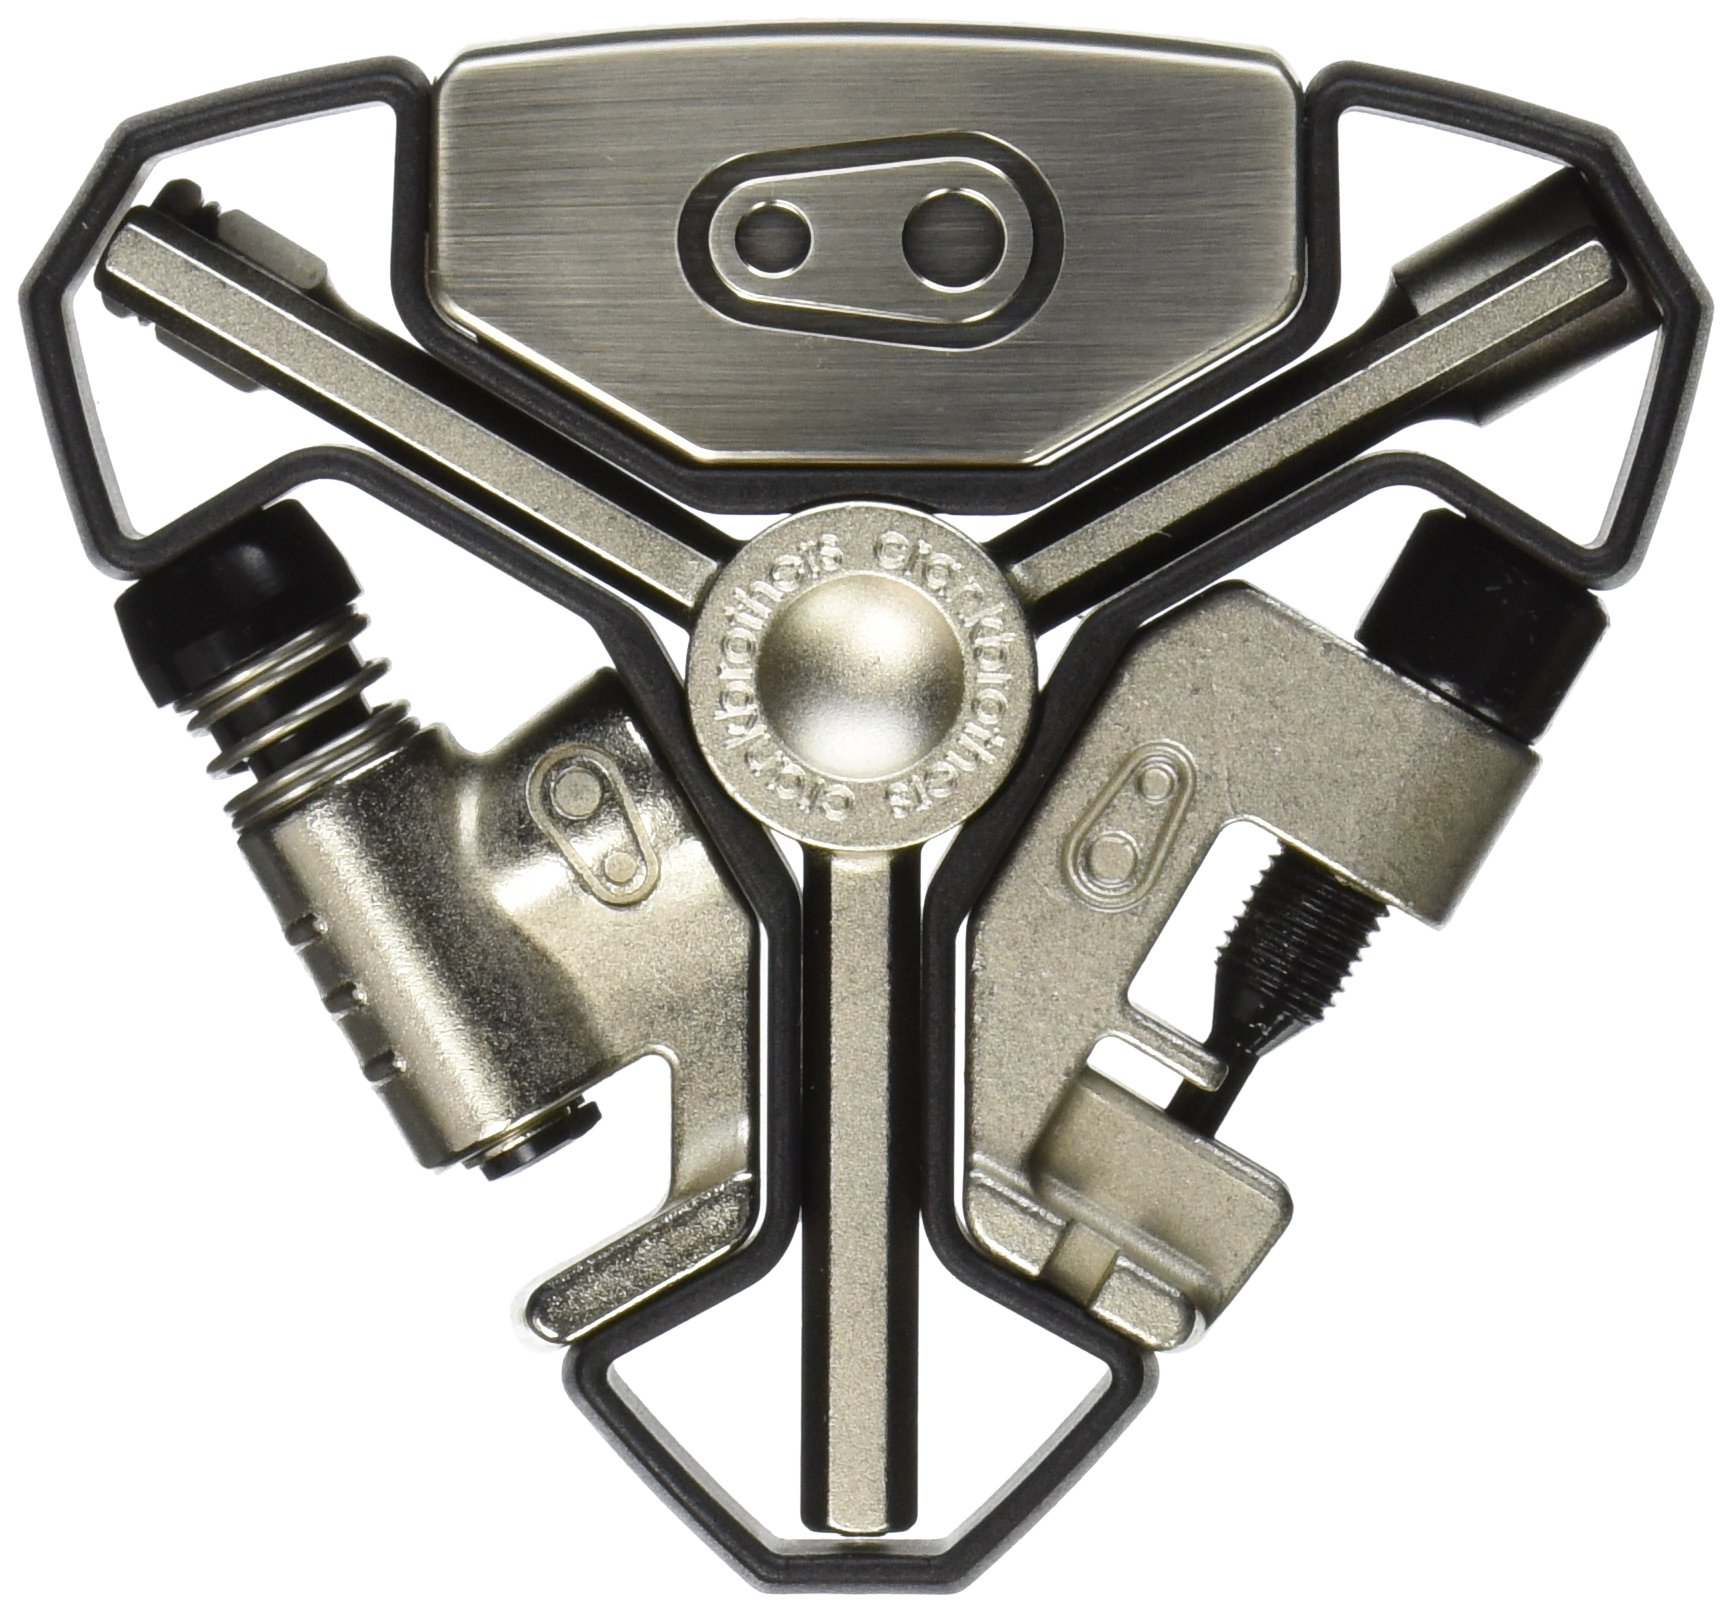 Crank Brothers Y-Tool Y16 Multi Tool - Your workshop on the trail by Crank Brothers